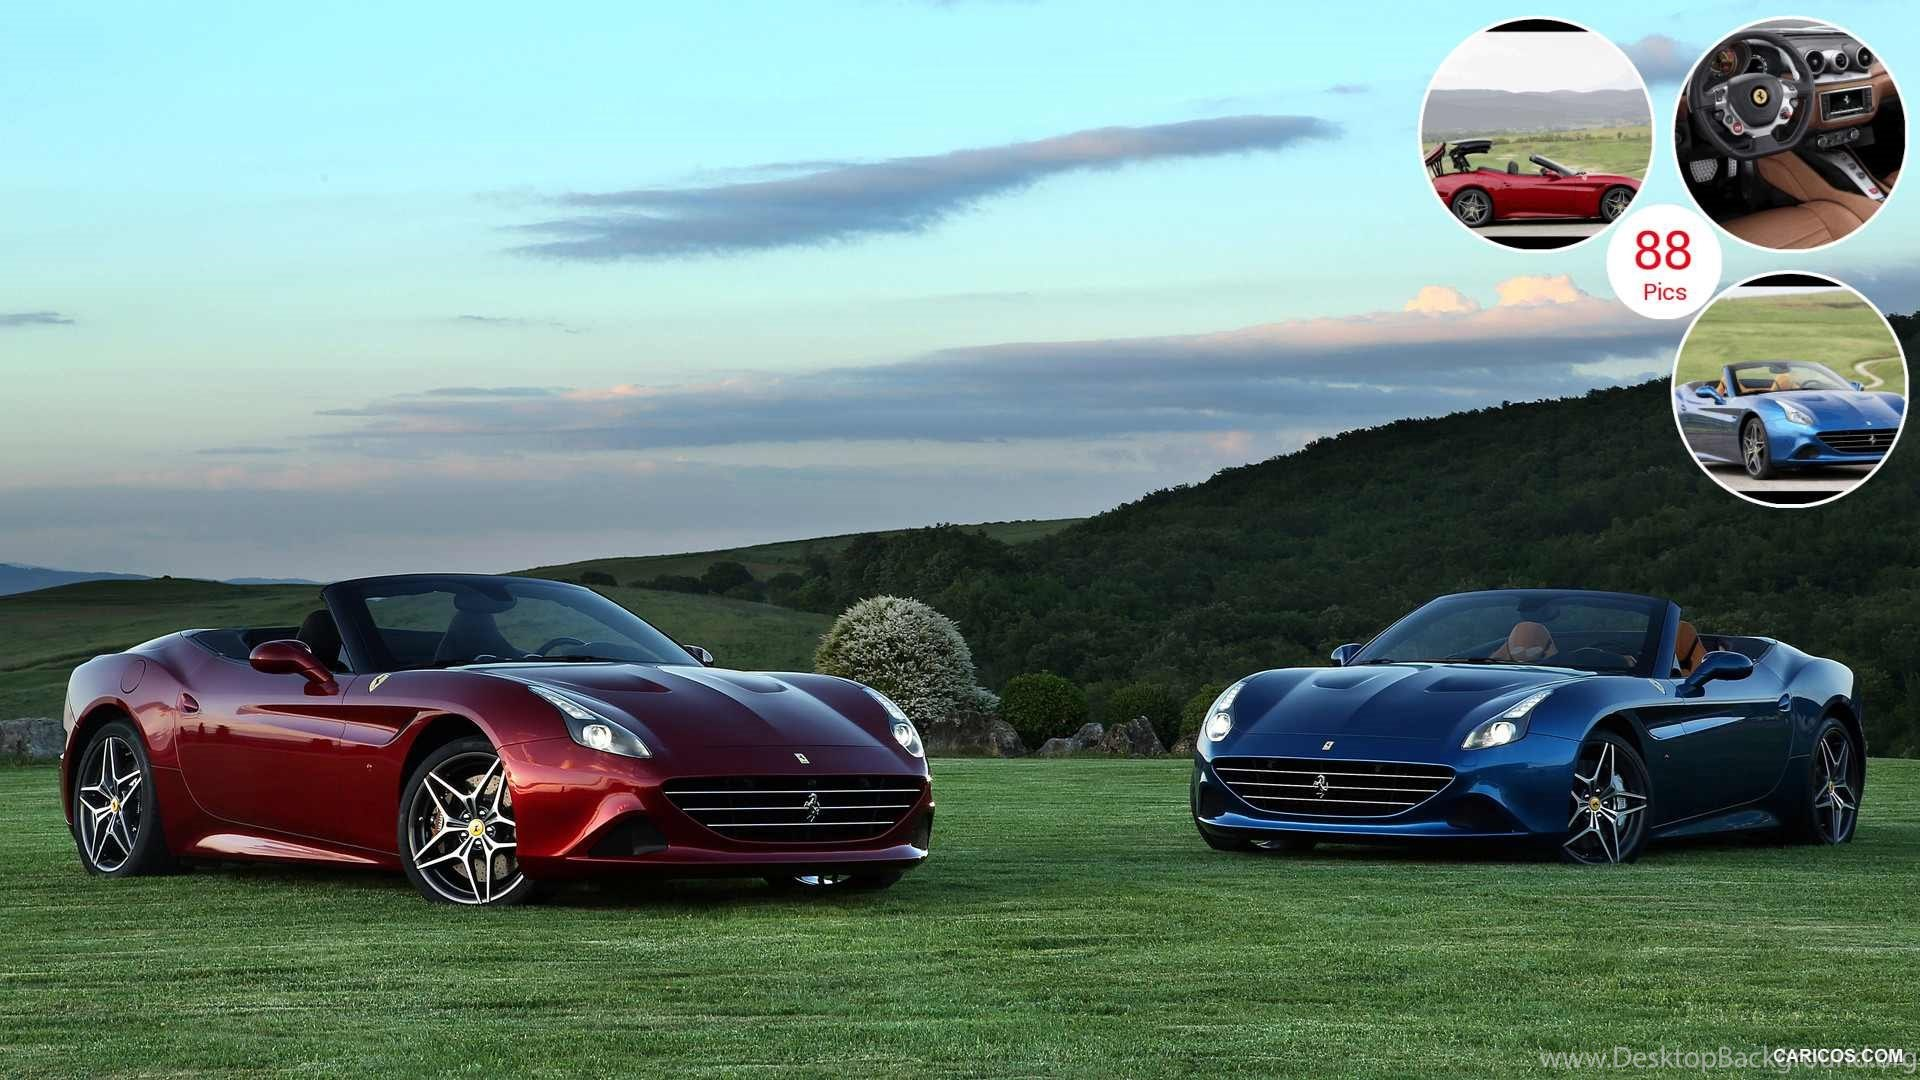 2015 Ferrari California T Front Desktop Background